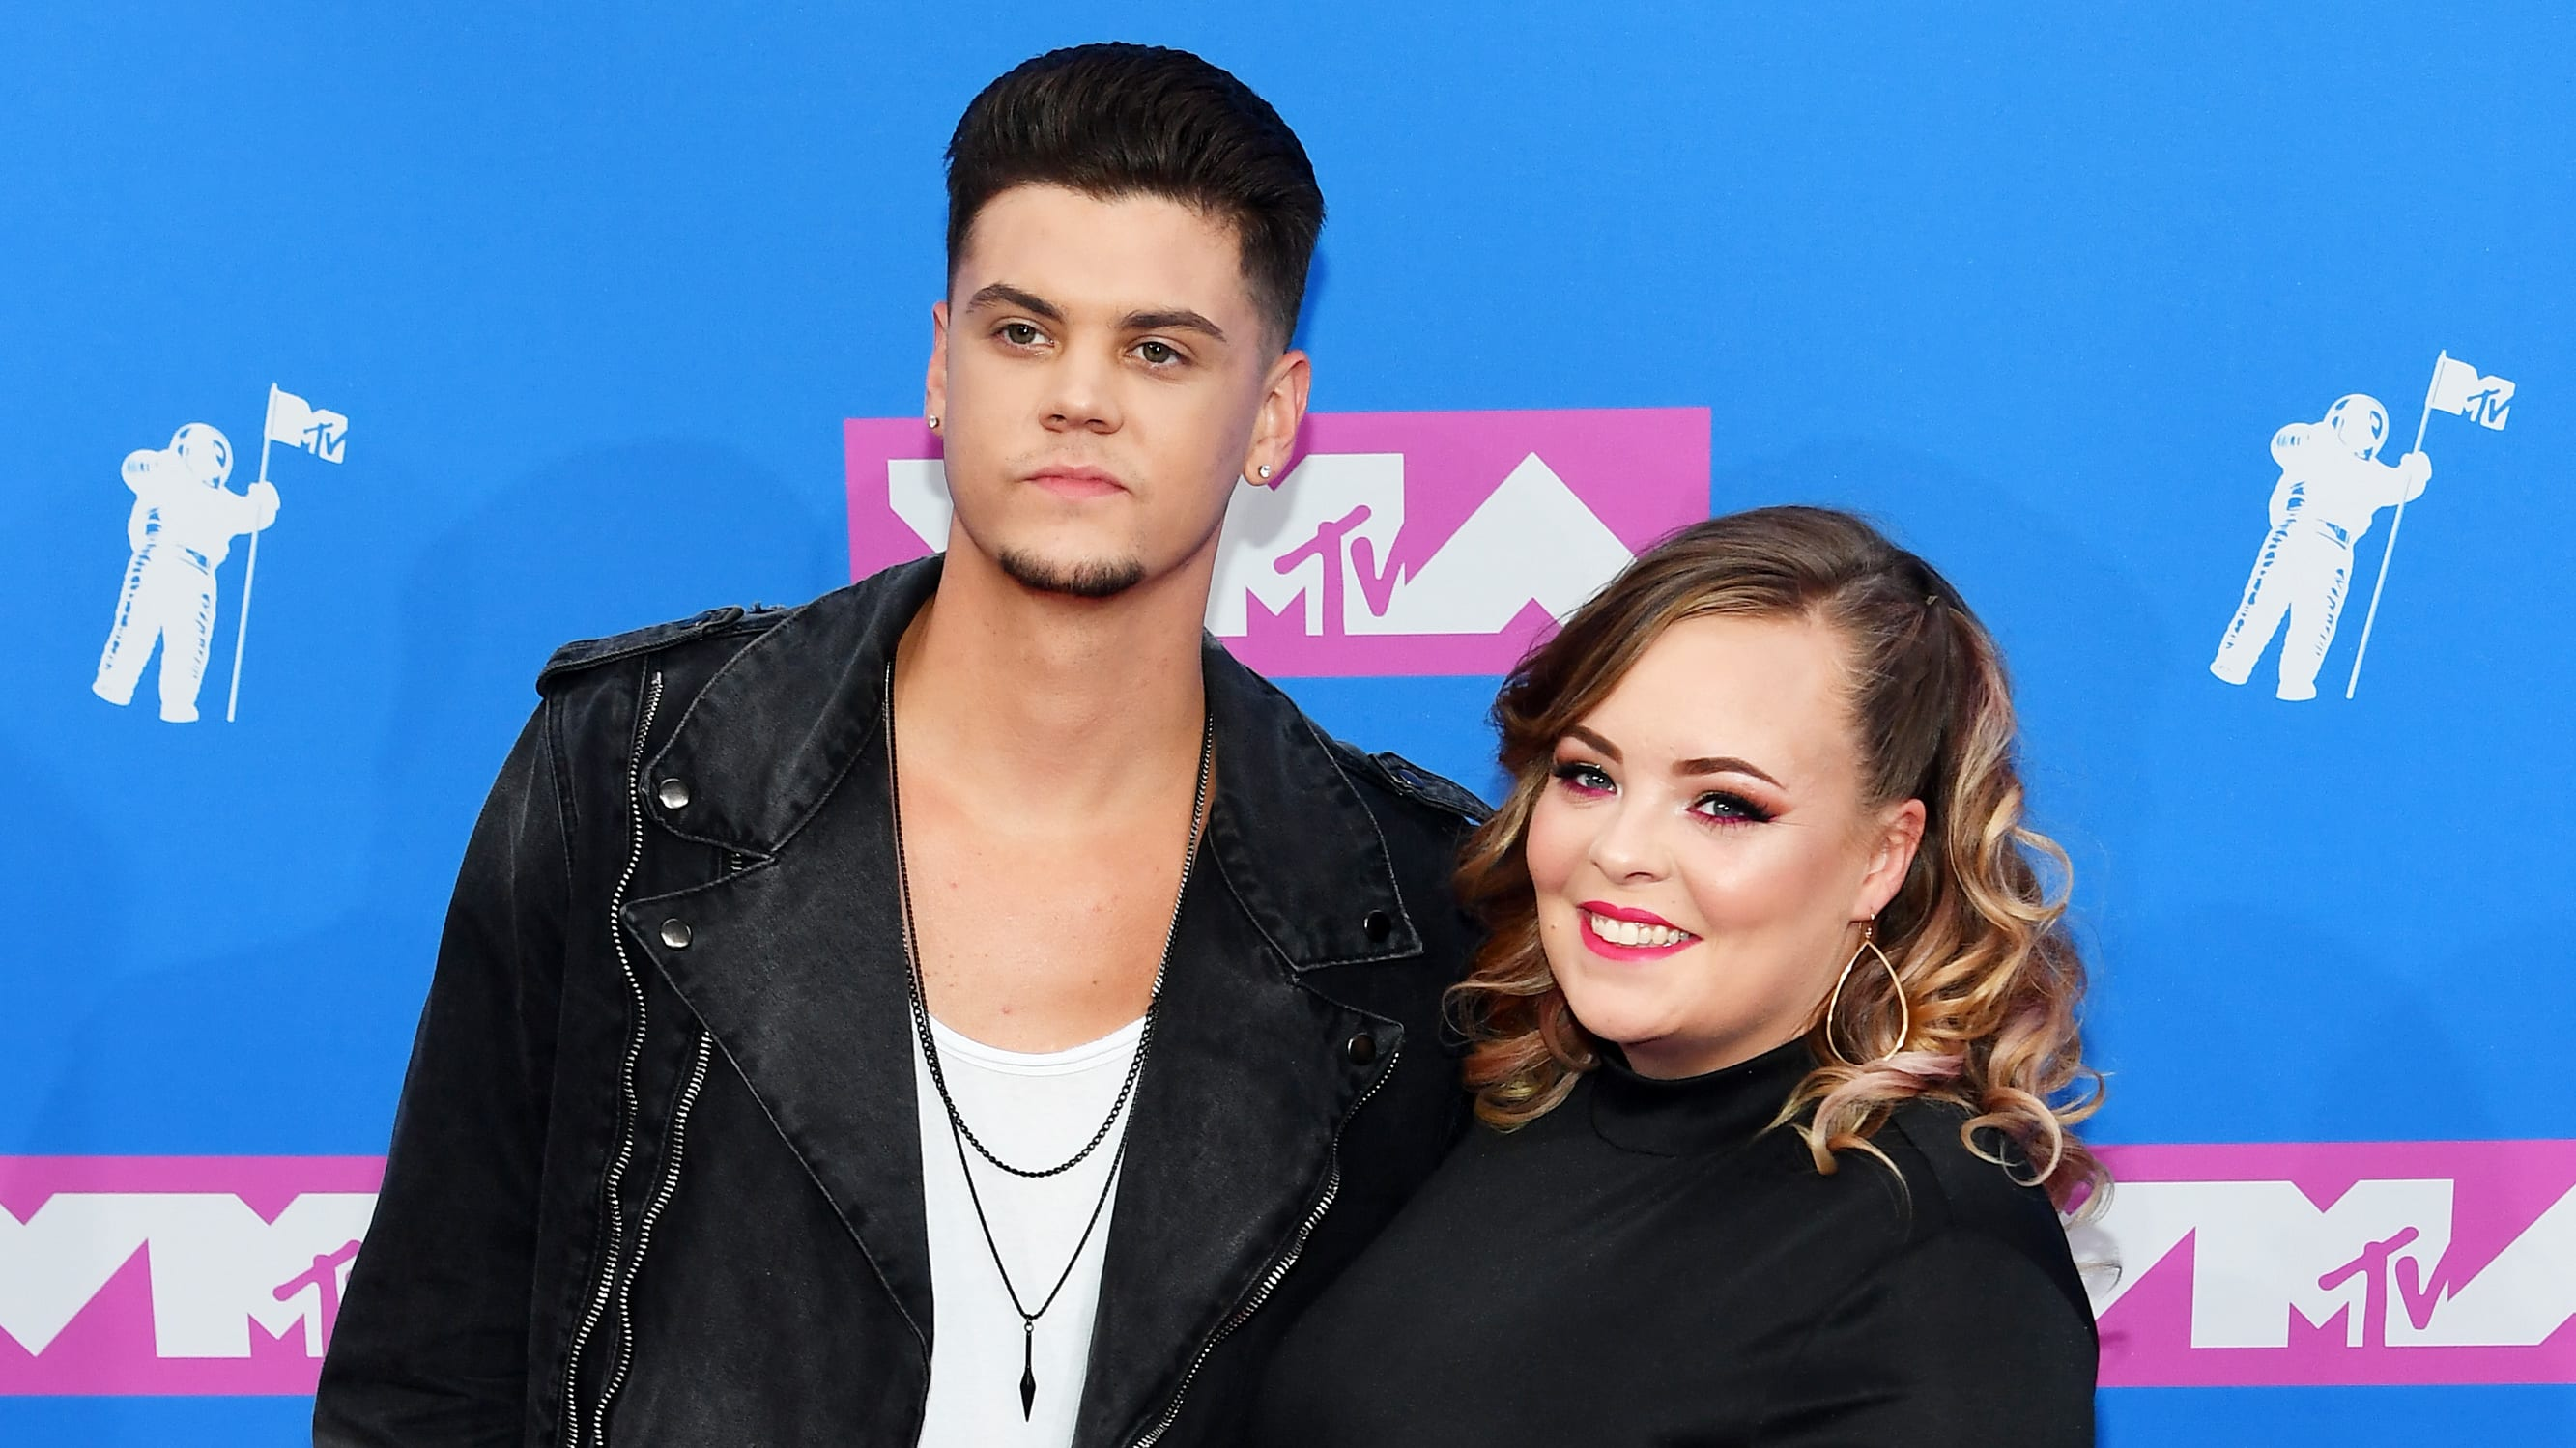 'Teen Mom's Tyler Baltierra Defends Wife Catelynn Against 'Disturbing' Troll Comments